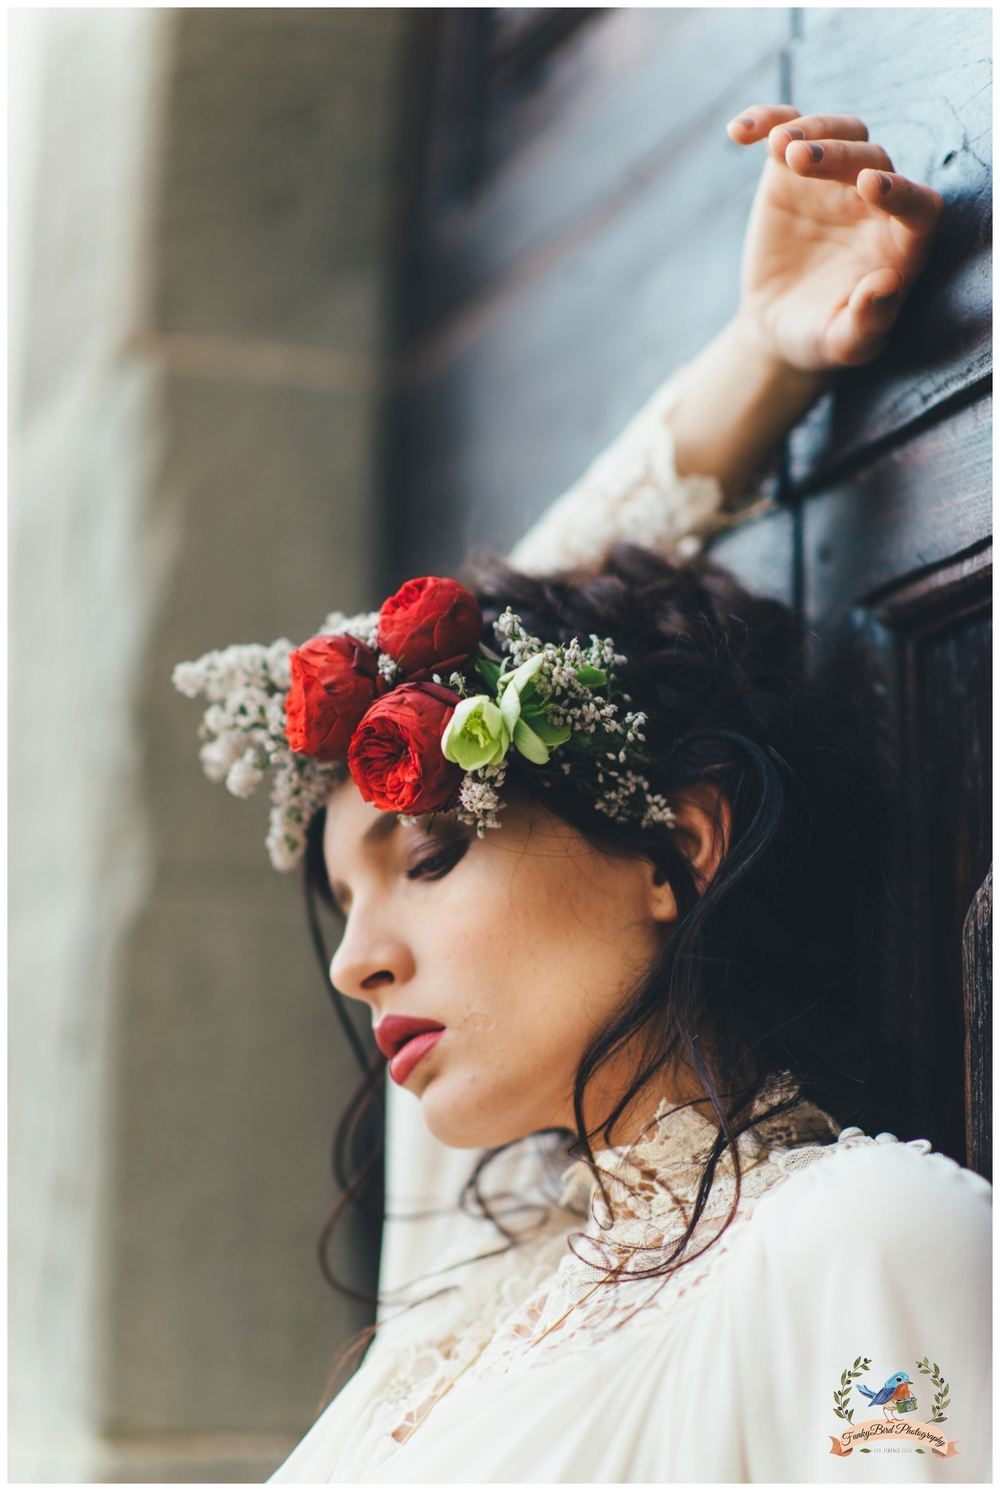 wedding photographer in tuscany, wedding in tuscany, wedding in Italy, destination wedding italy, wedding photographer in Italy, bride, trouwen in toscane, funkybird wedding design, bröllop i italien, wedding in florence, wedding venue tuscany